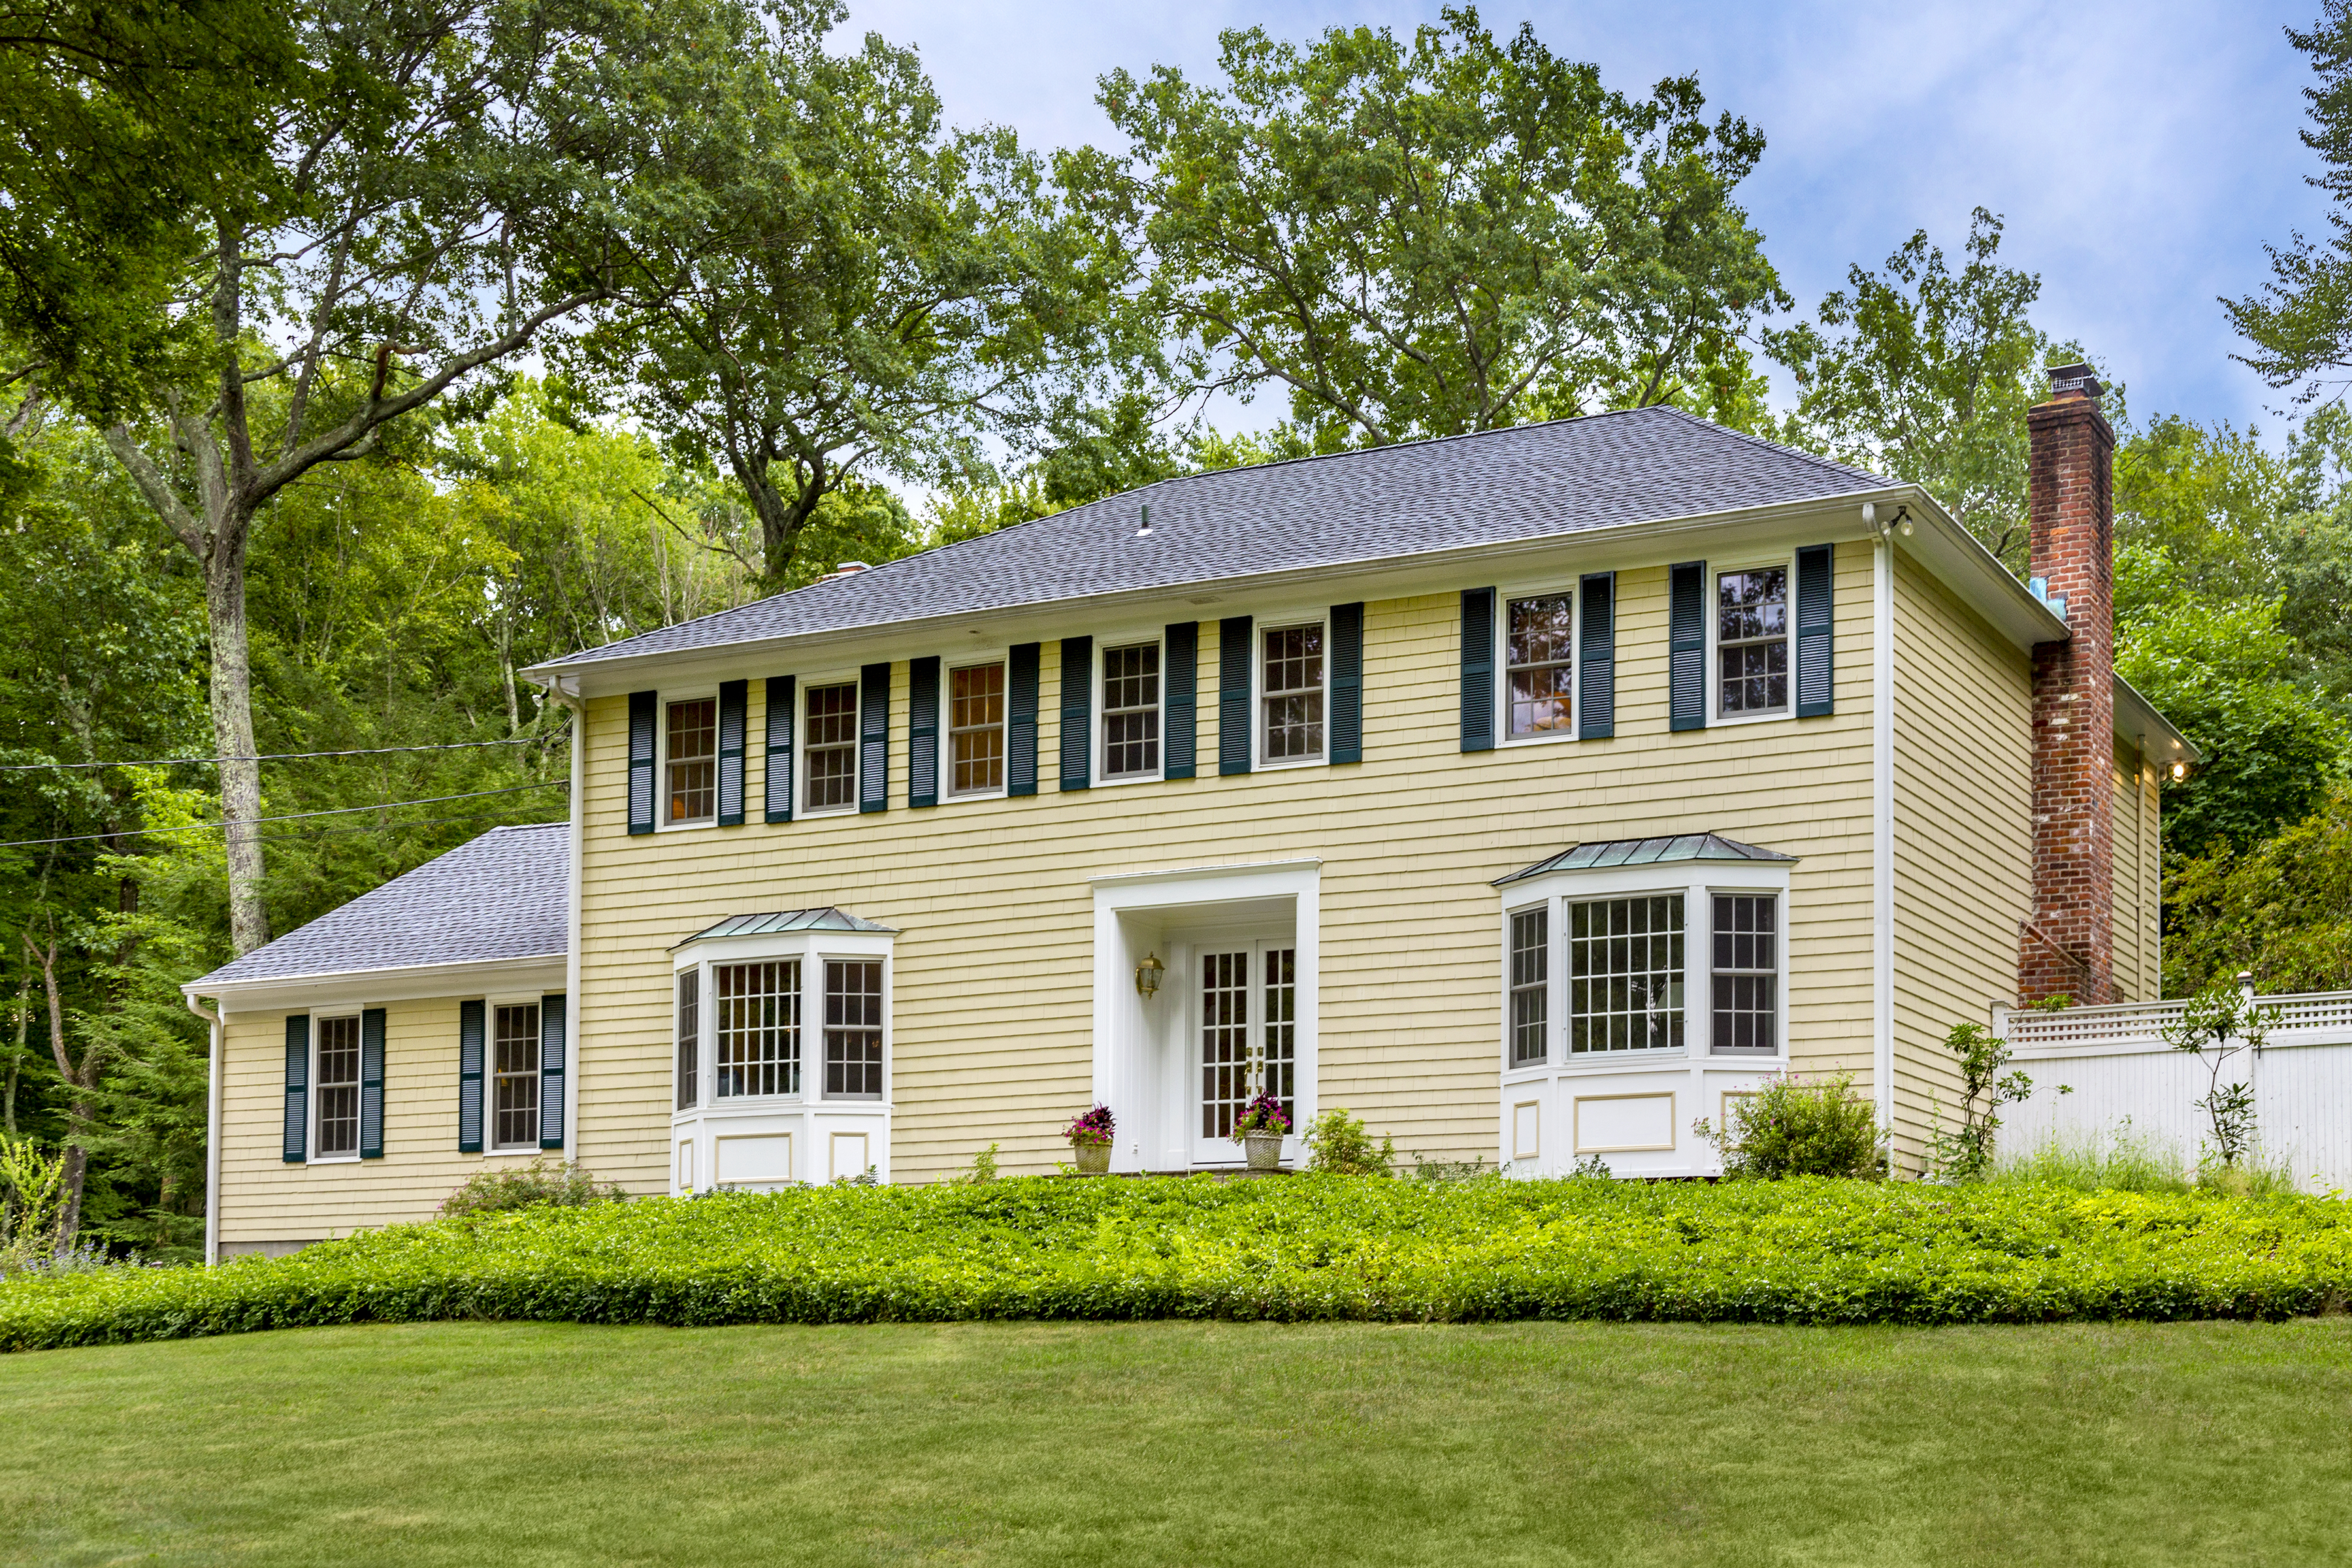 rentals property at A House For All Season